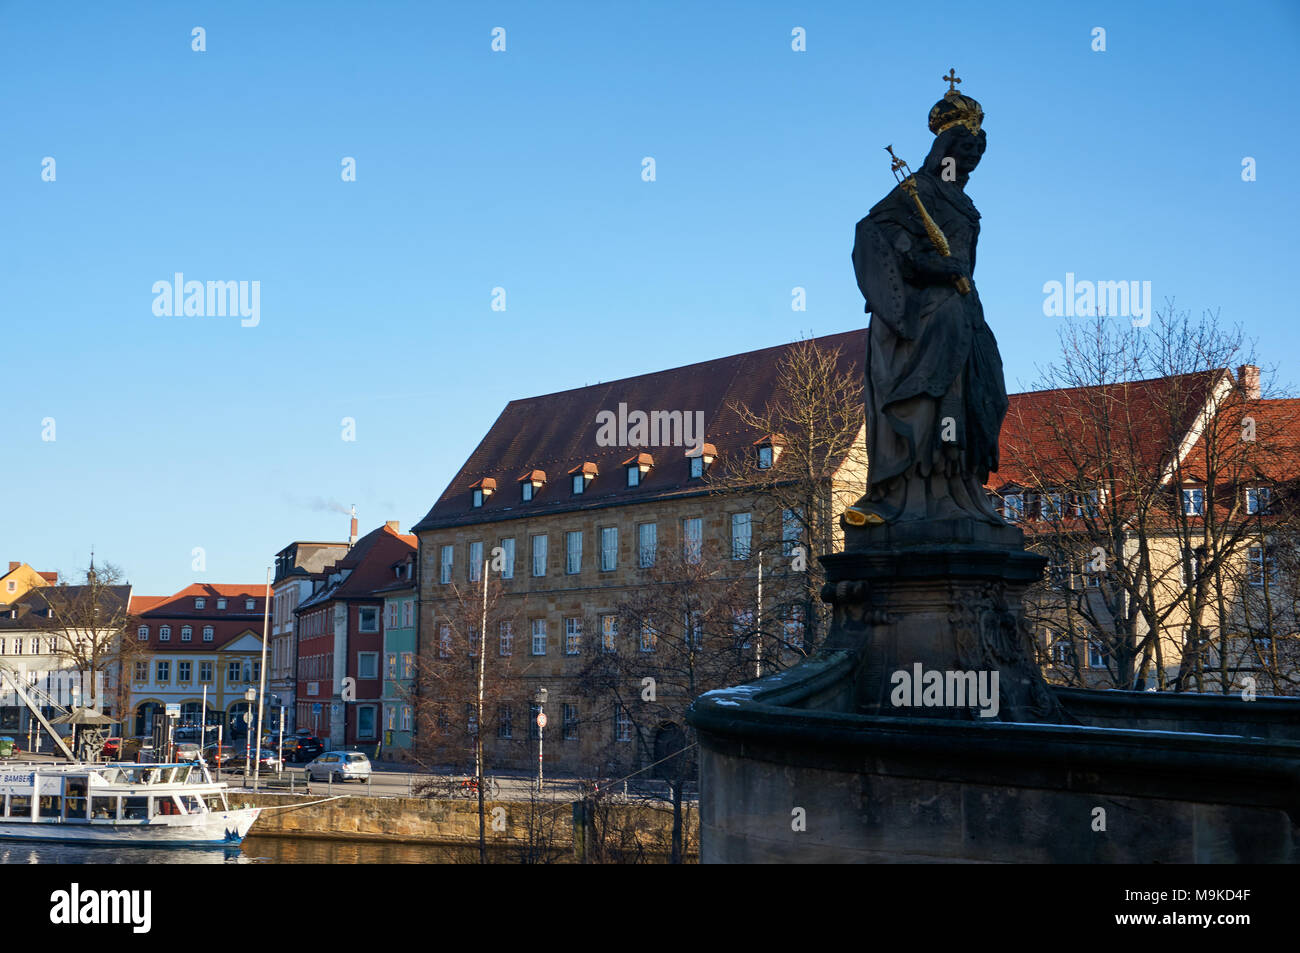 Bamberg, Germany - January 22, 2017: Statue in Untere Bruecke Bridge in Bamberg - Stock Image